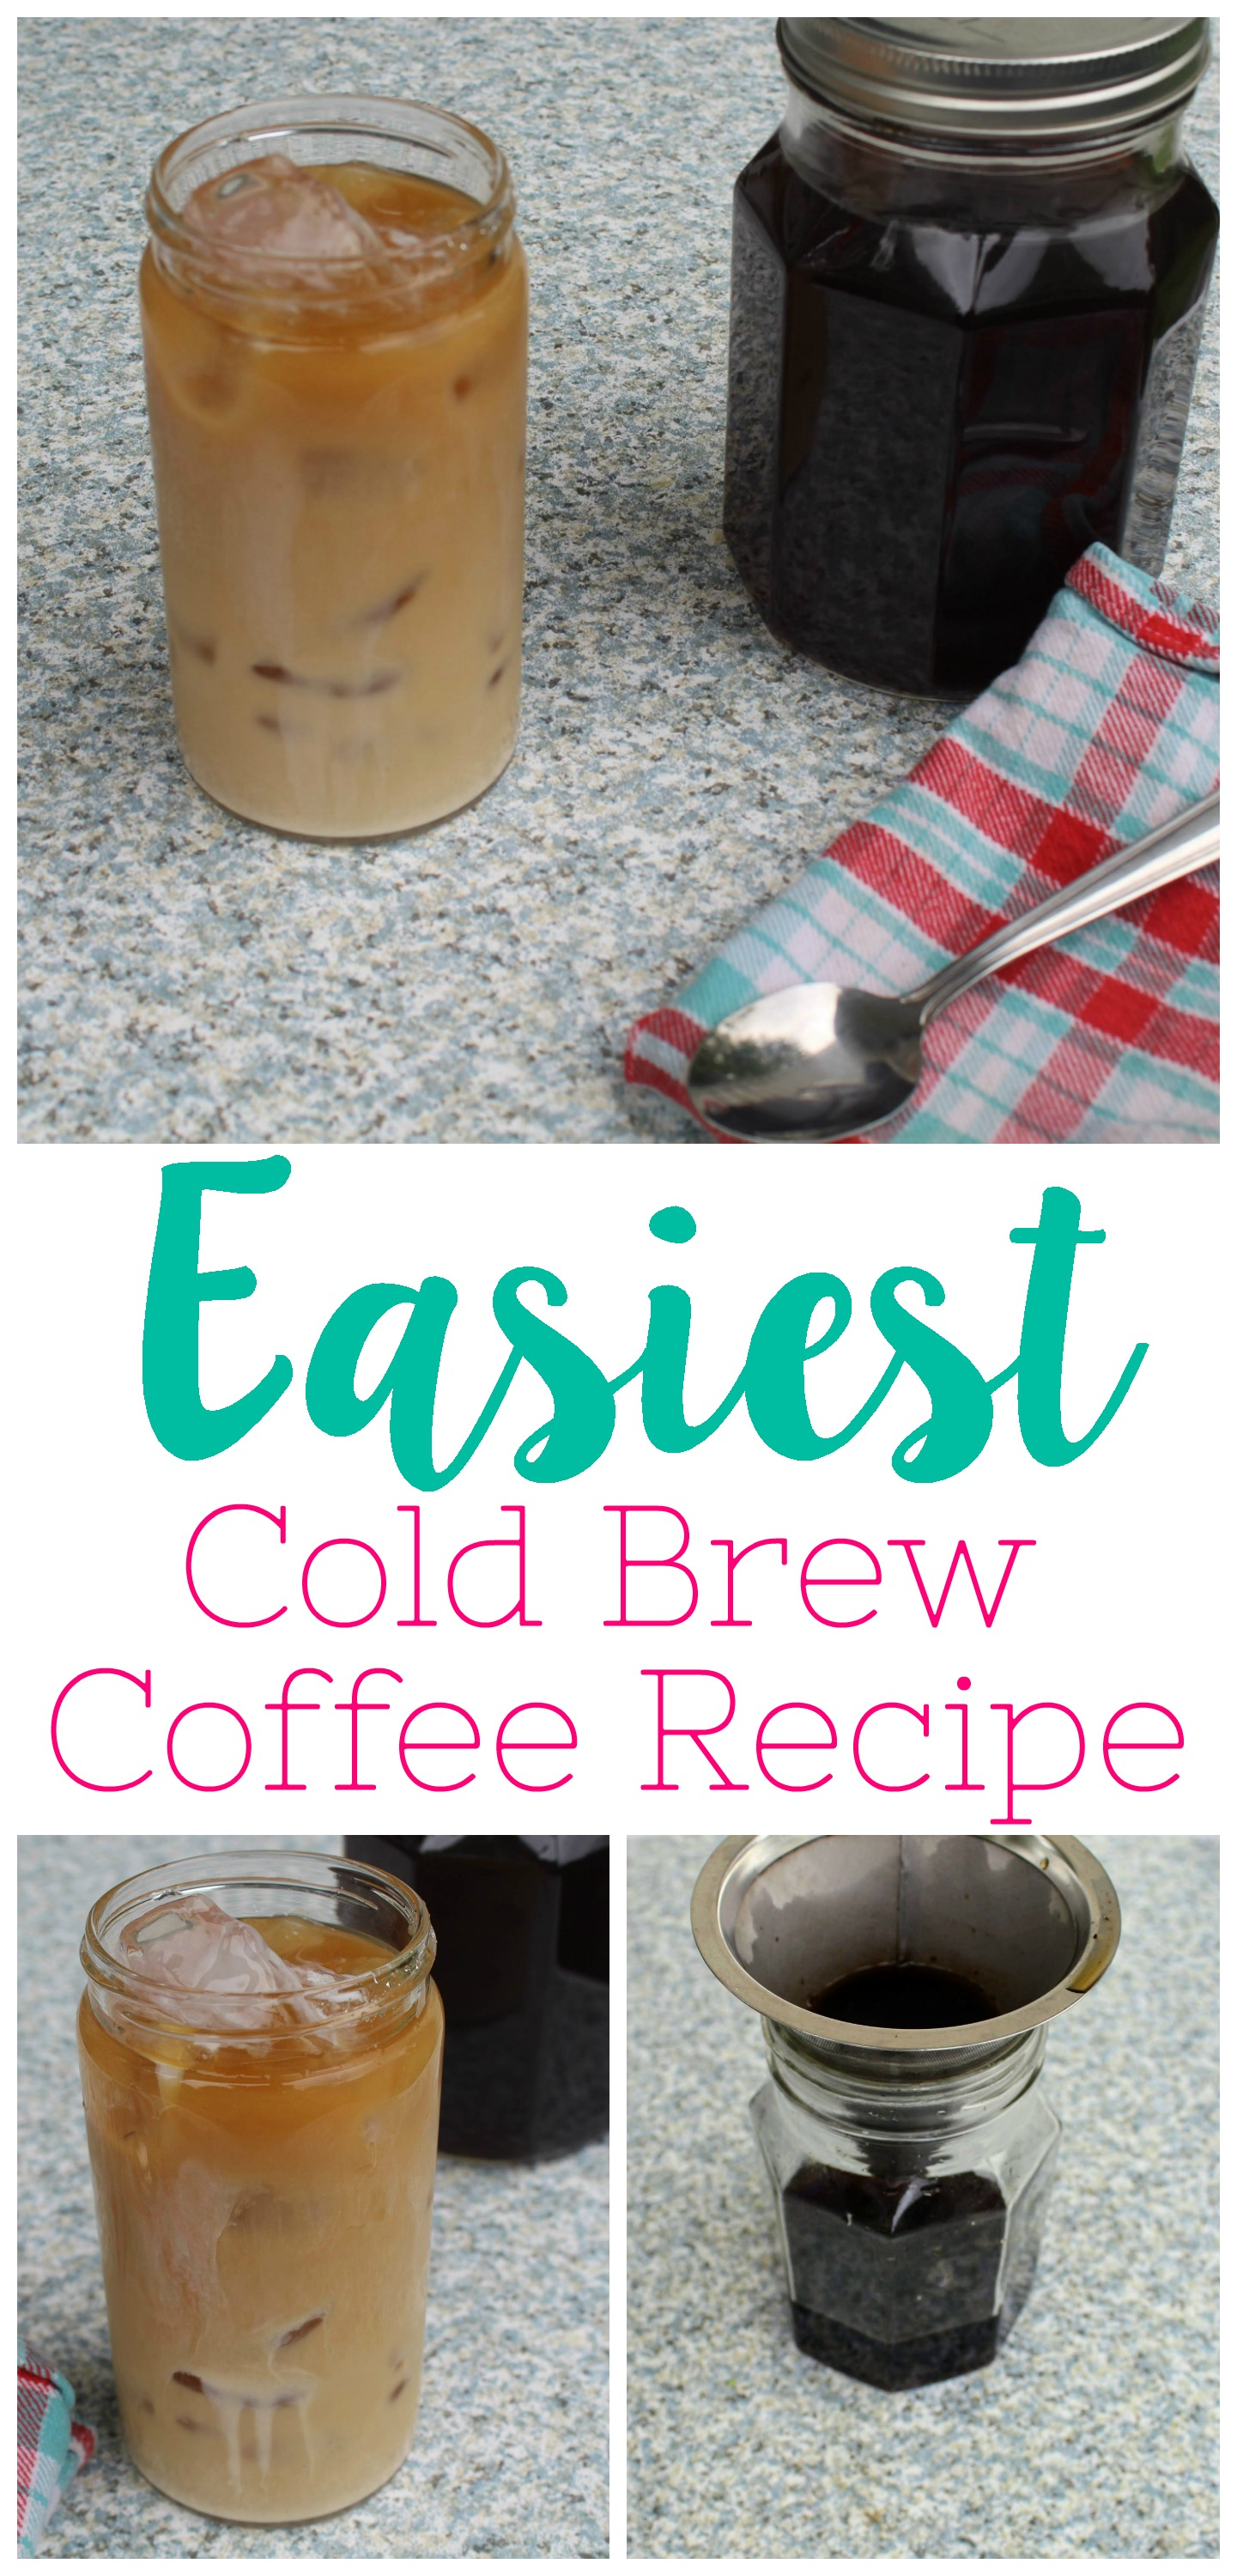 easy cold brew coffee recipe, easy iced coffee recipe, homemade iced coffee, easy cold brew concentrate, best cold brew coffee recipe